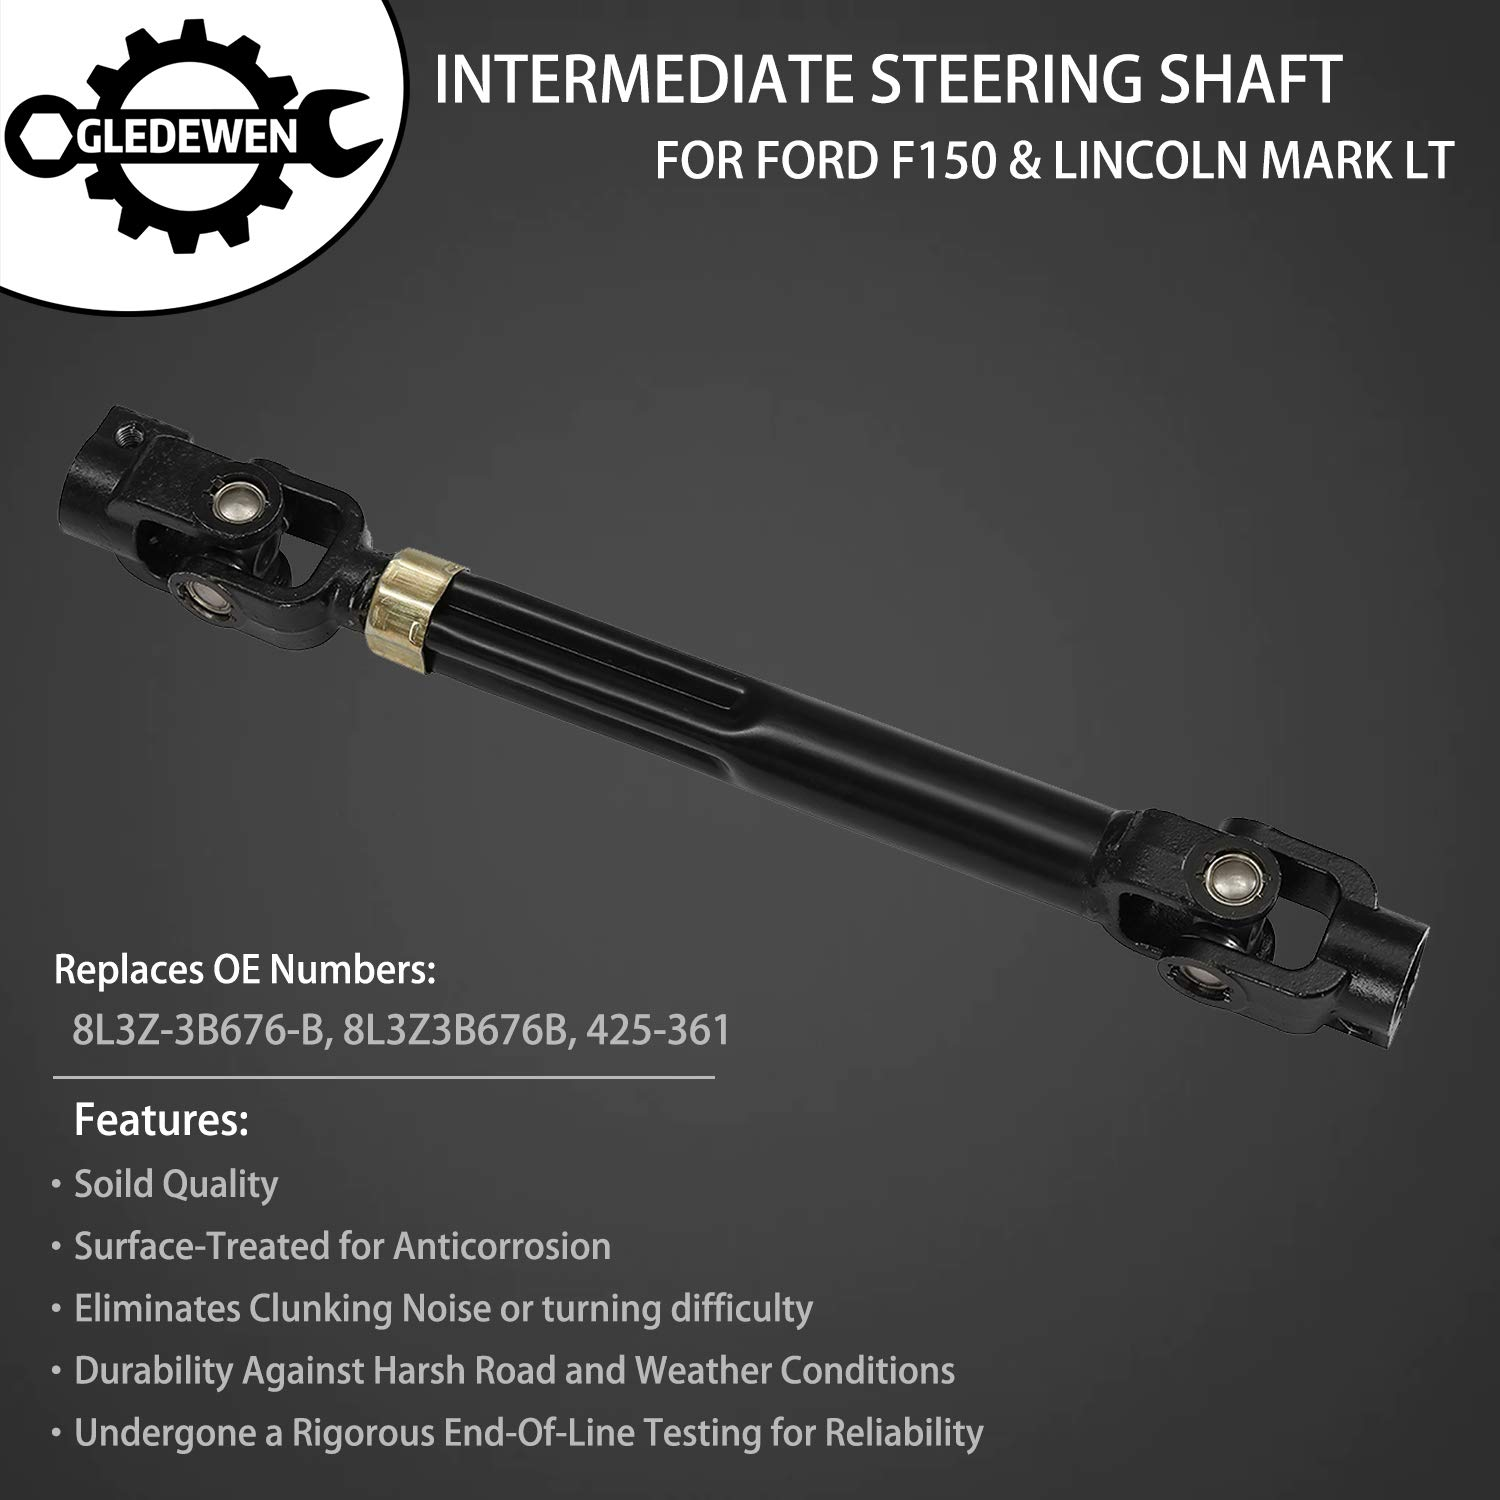 Replaces# 8L3Z-3B676-B Steering Column Lower Intermediate Steering Shaft with Rag-Joint Universal U-Joint Coupler 2006-2008 Lincoln Mark LT 8L3Z3B676B 425-361 for 2004-2008 Ford F-150